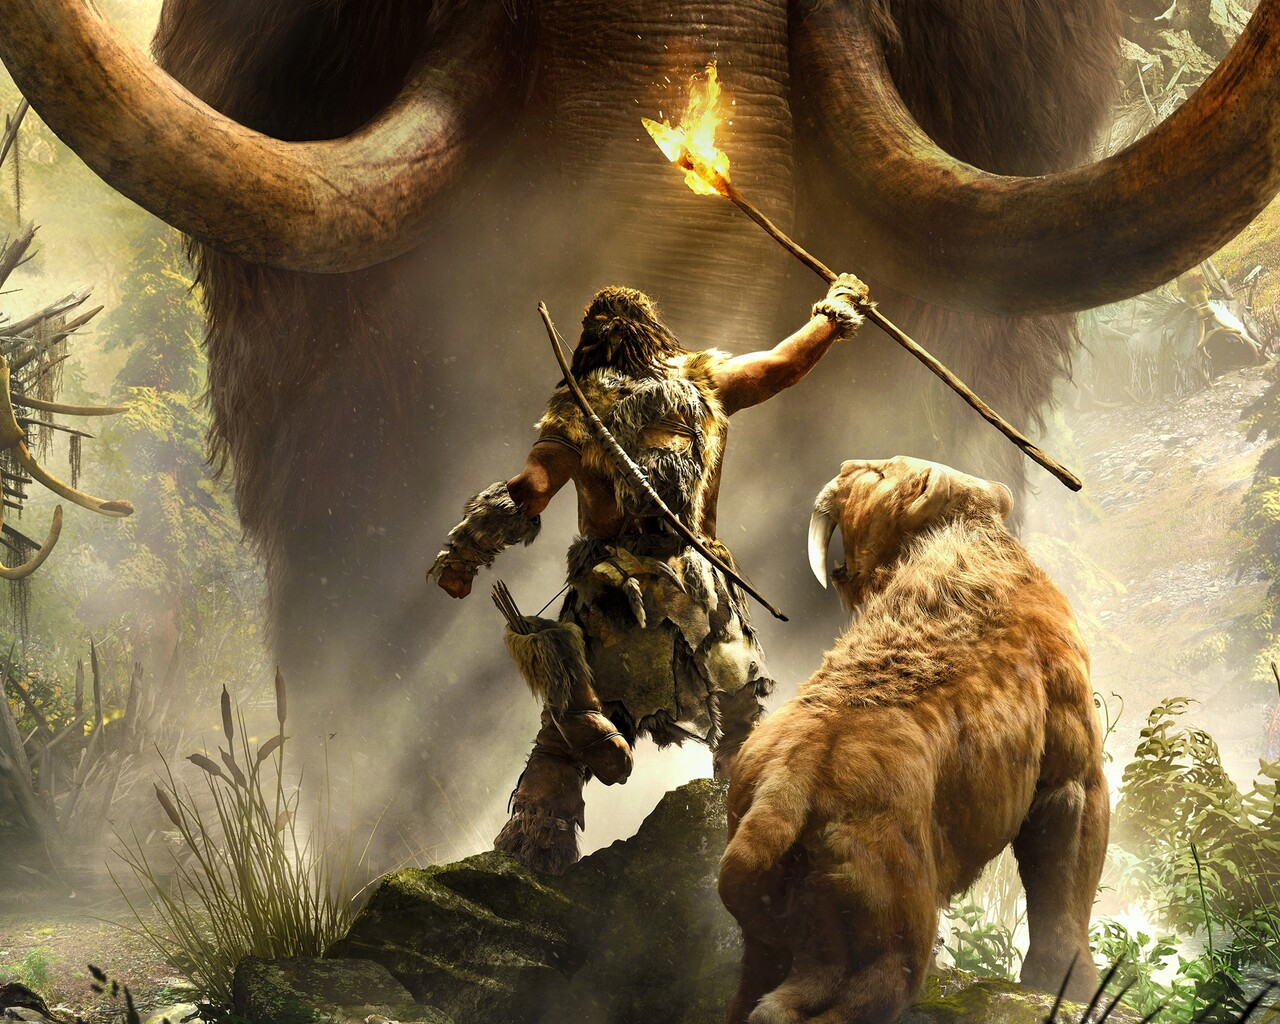 1280x1024 Far Cry Primal 1280x1024 Resolution HD 4k